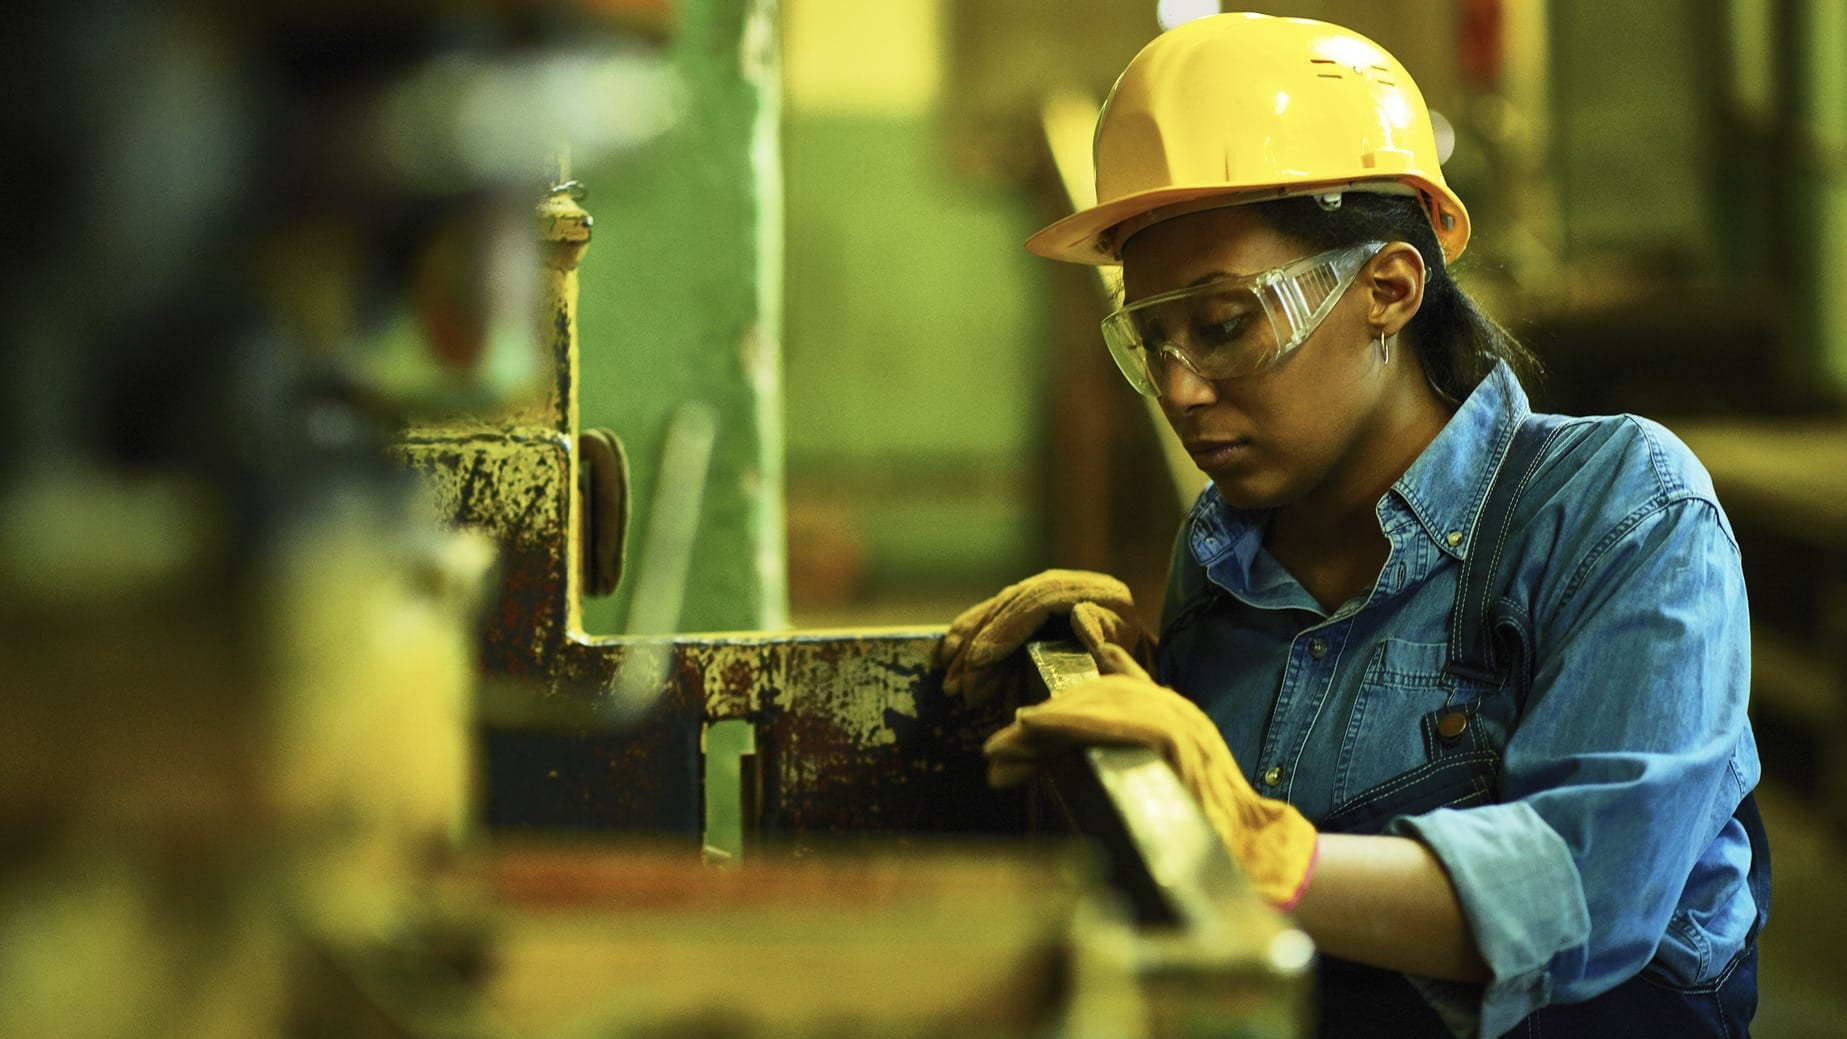 Female Worker In A Hard Hat Stock Photo